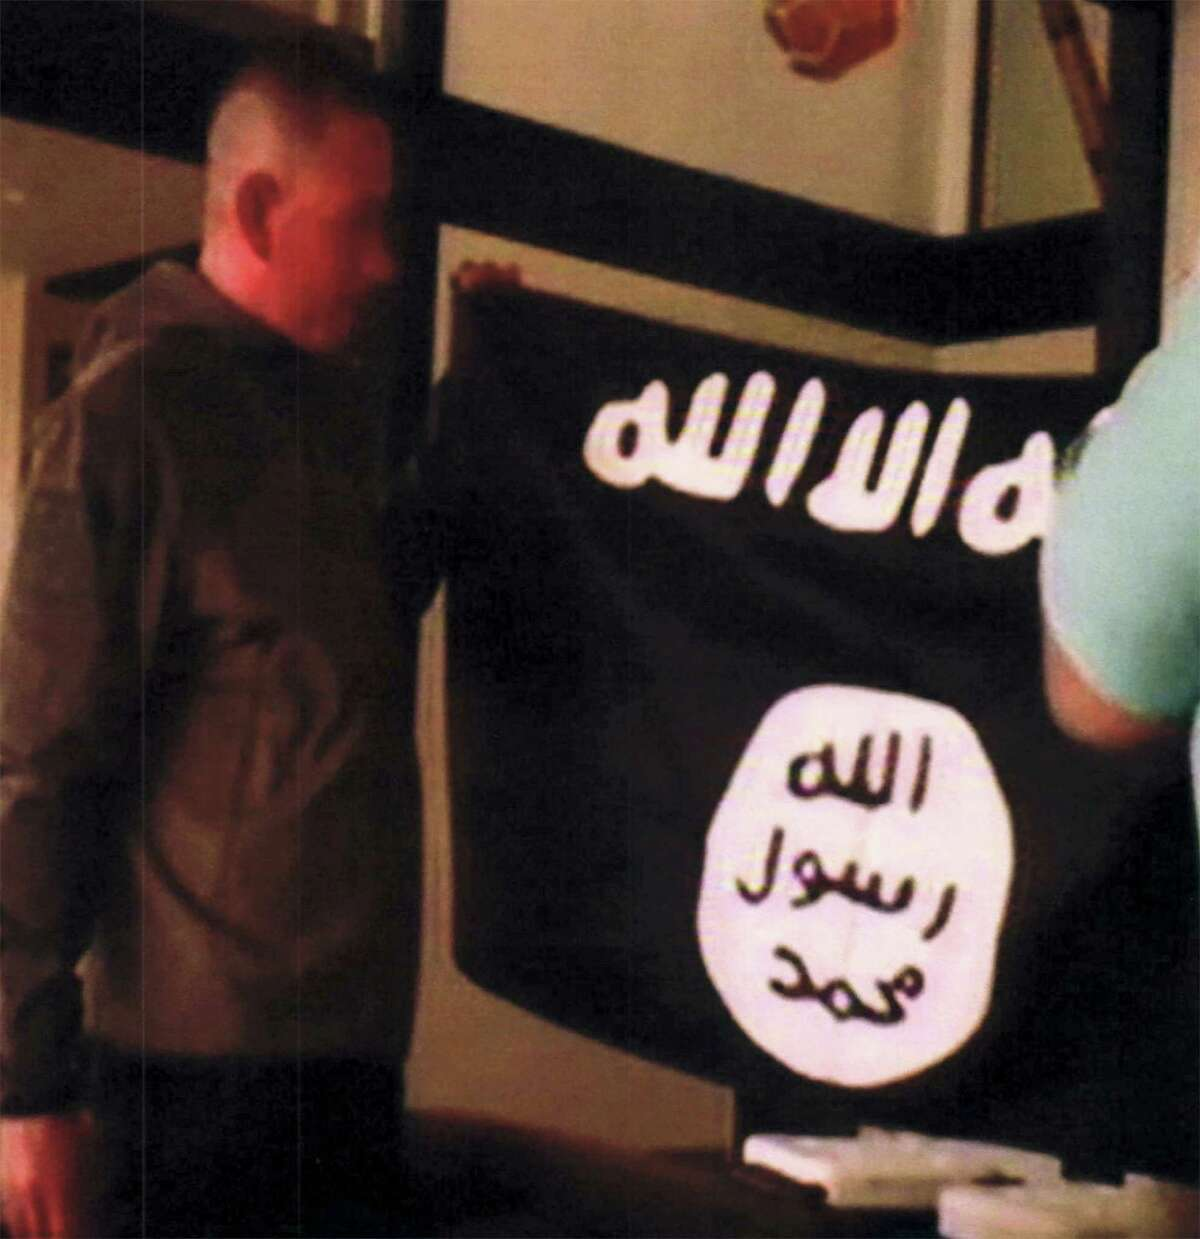 In this July 8, 2017, file image taken from FBI video and provided by the U.S. Attorney's Office in Hawaii on July 13, 2017, Army Sgt. 1st Class Ikaika Kang holds an Islamic State group flag after allegedly pledging allegiance to the terror group at a house in Honolulu. A federal grand jury in Hawaii has indicted Kang for attempting to provide material support to the Islamic State group. Kang was indicted Friday, July 21 after he was arrested by an FBI SWAT team on July 8. Kang was ordered held without bail. Because of the indictment, Kang will no longer have a preliminary hearing that was scheduled for Monday, July 24.